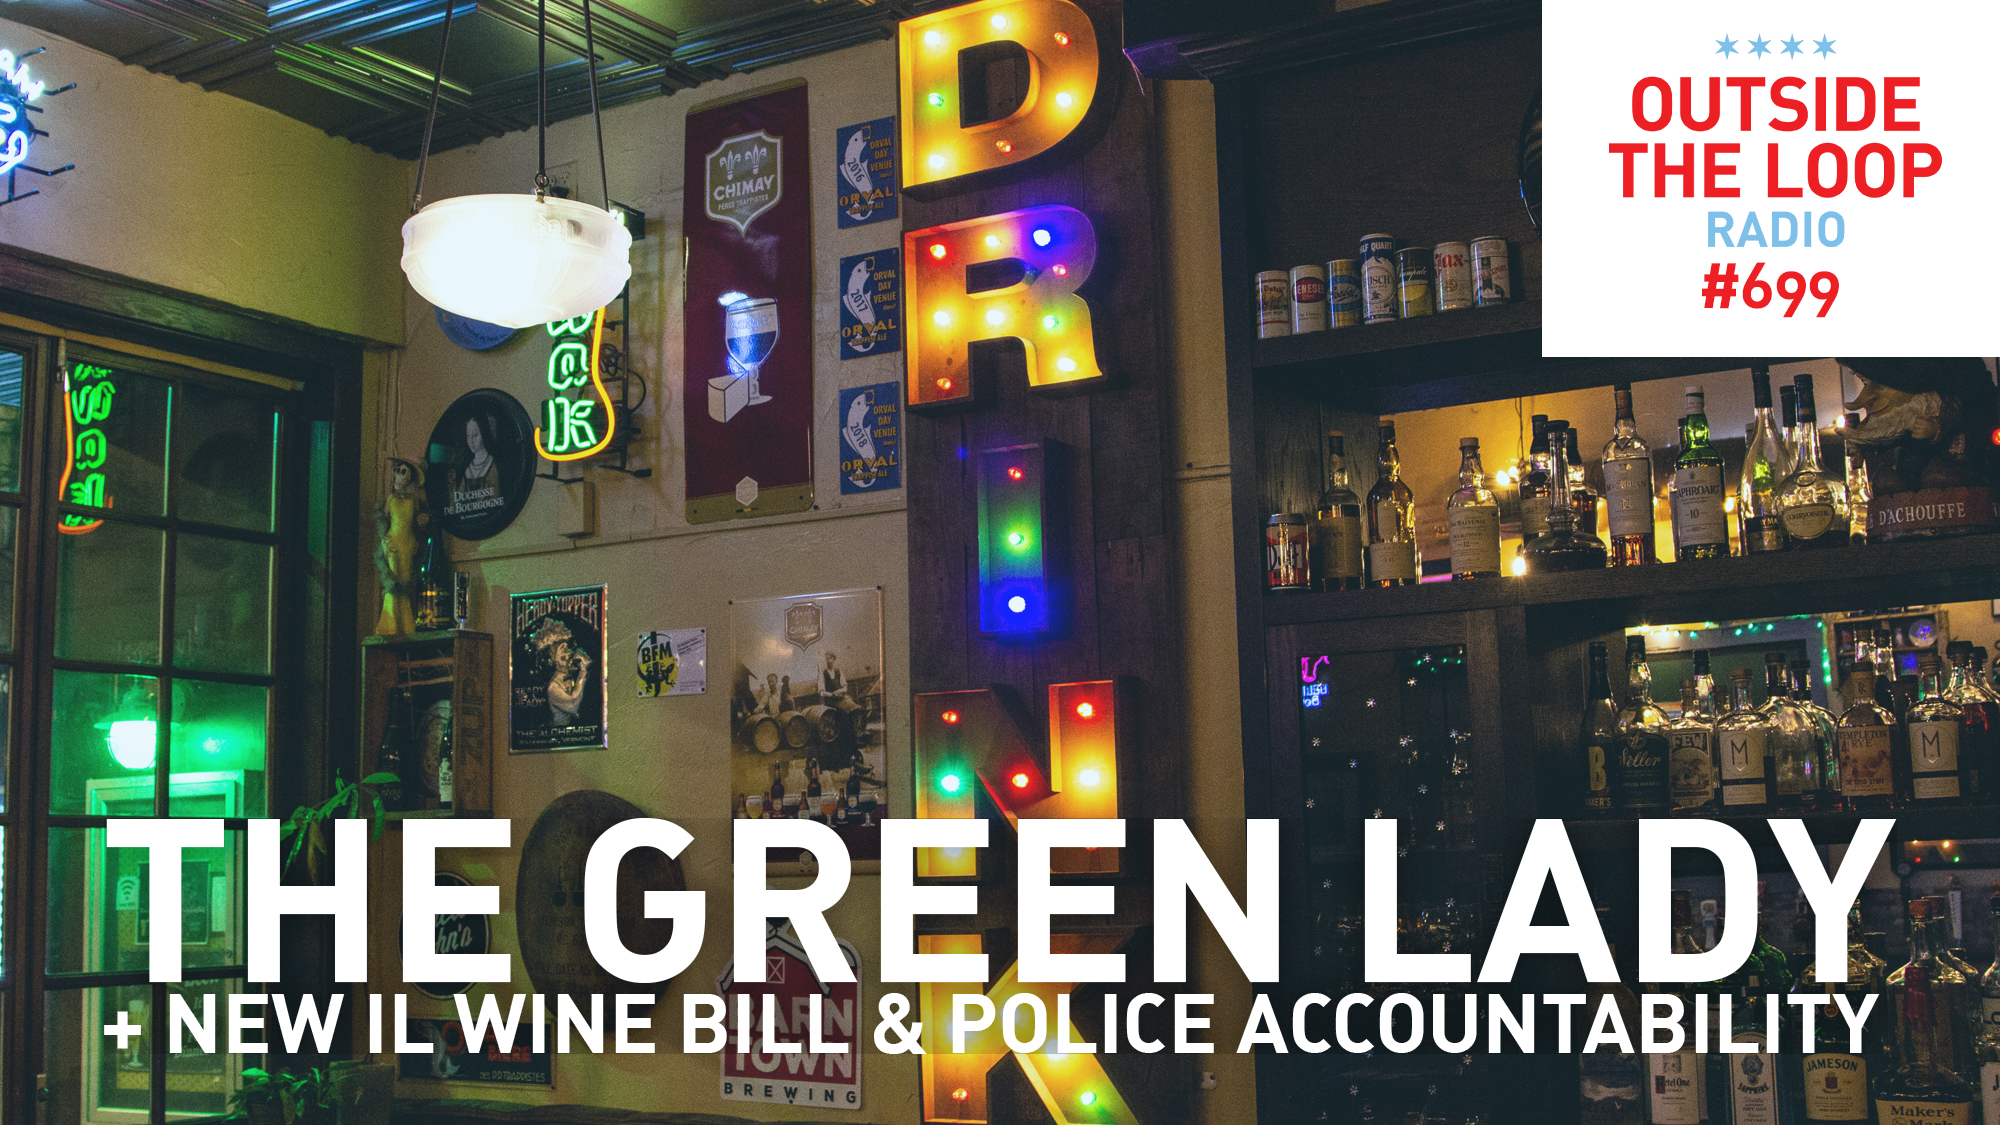 Mike Stephen takes us into The Green Lady bar in Chicago.